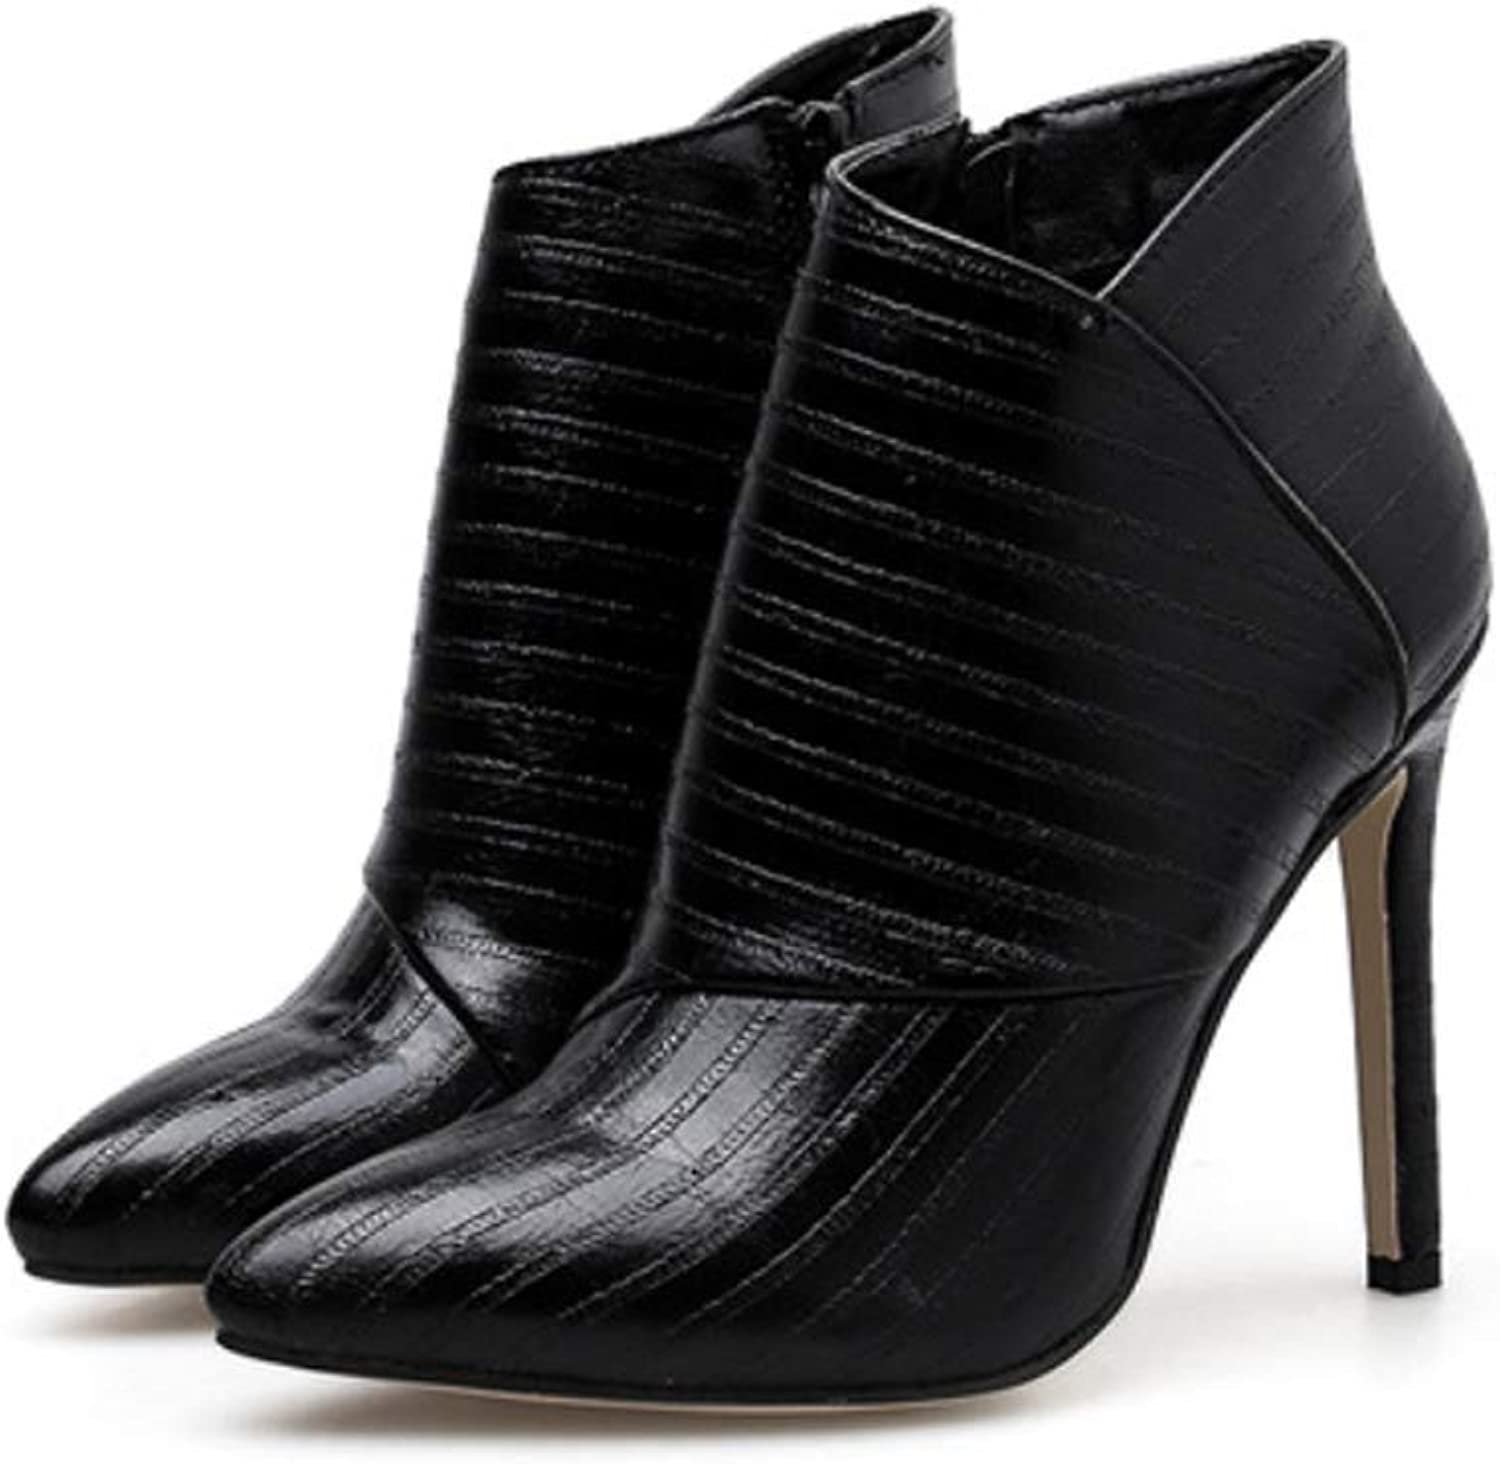 Ankle Boots Womens Fashion Stiletto Heel Pointed Toe shoes Black 2018 Fall